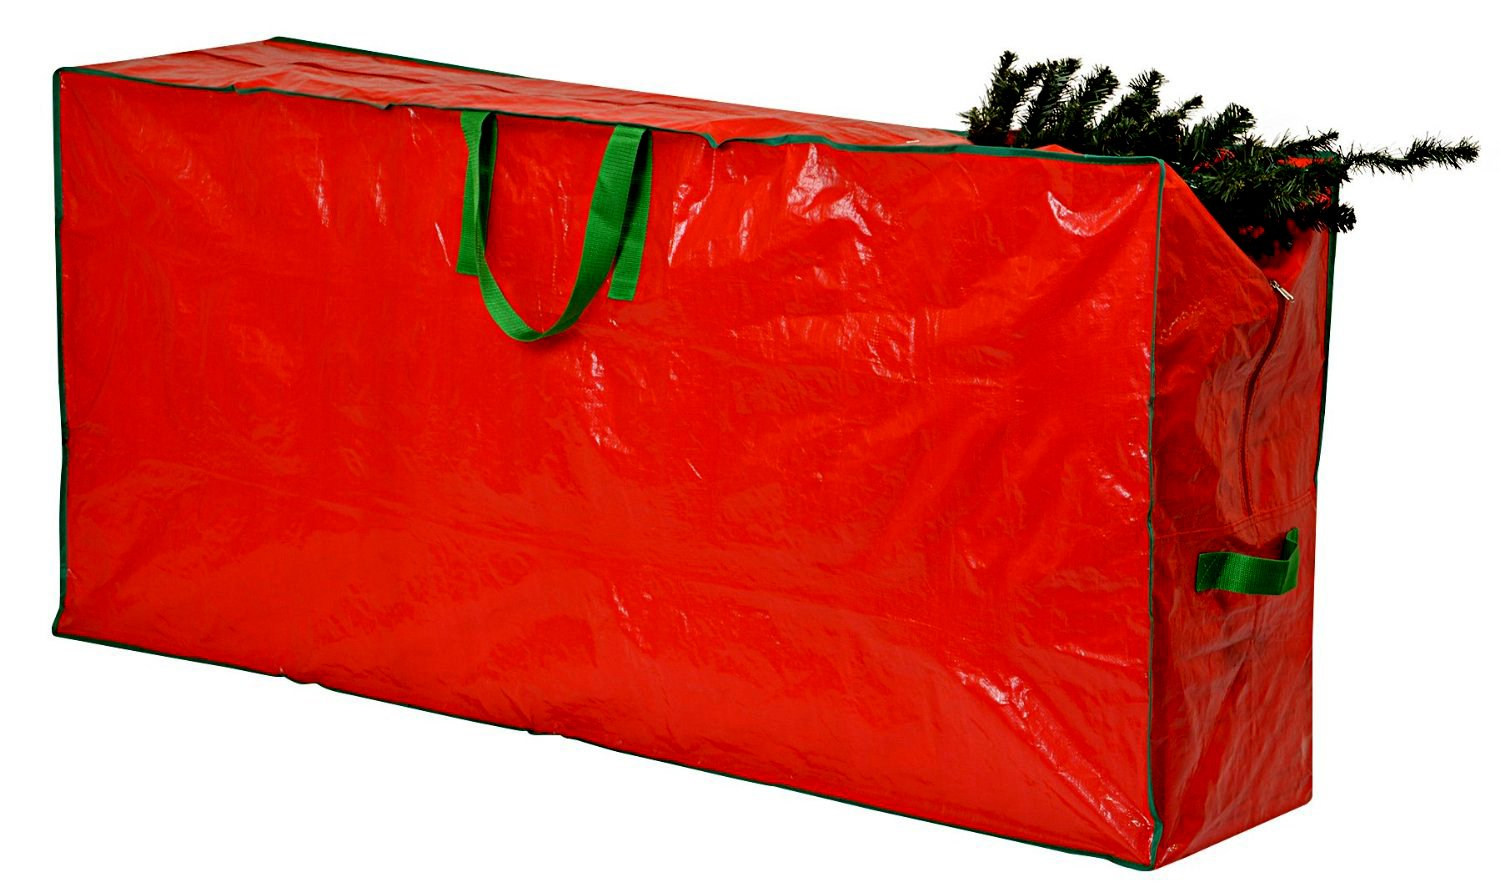 Christmas Tree Storage Bag - 65'' x 15'' x 30'' - Extra Large Zippered Bag with 2 Reinforced Handles. Stores a 9-foot Disassembled Christmas Tree. Protects against Dust, Insects, and Moisture. (Red)